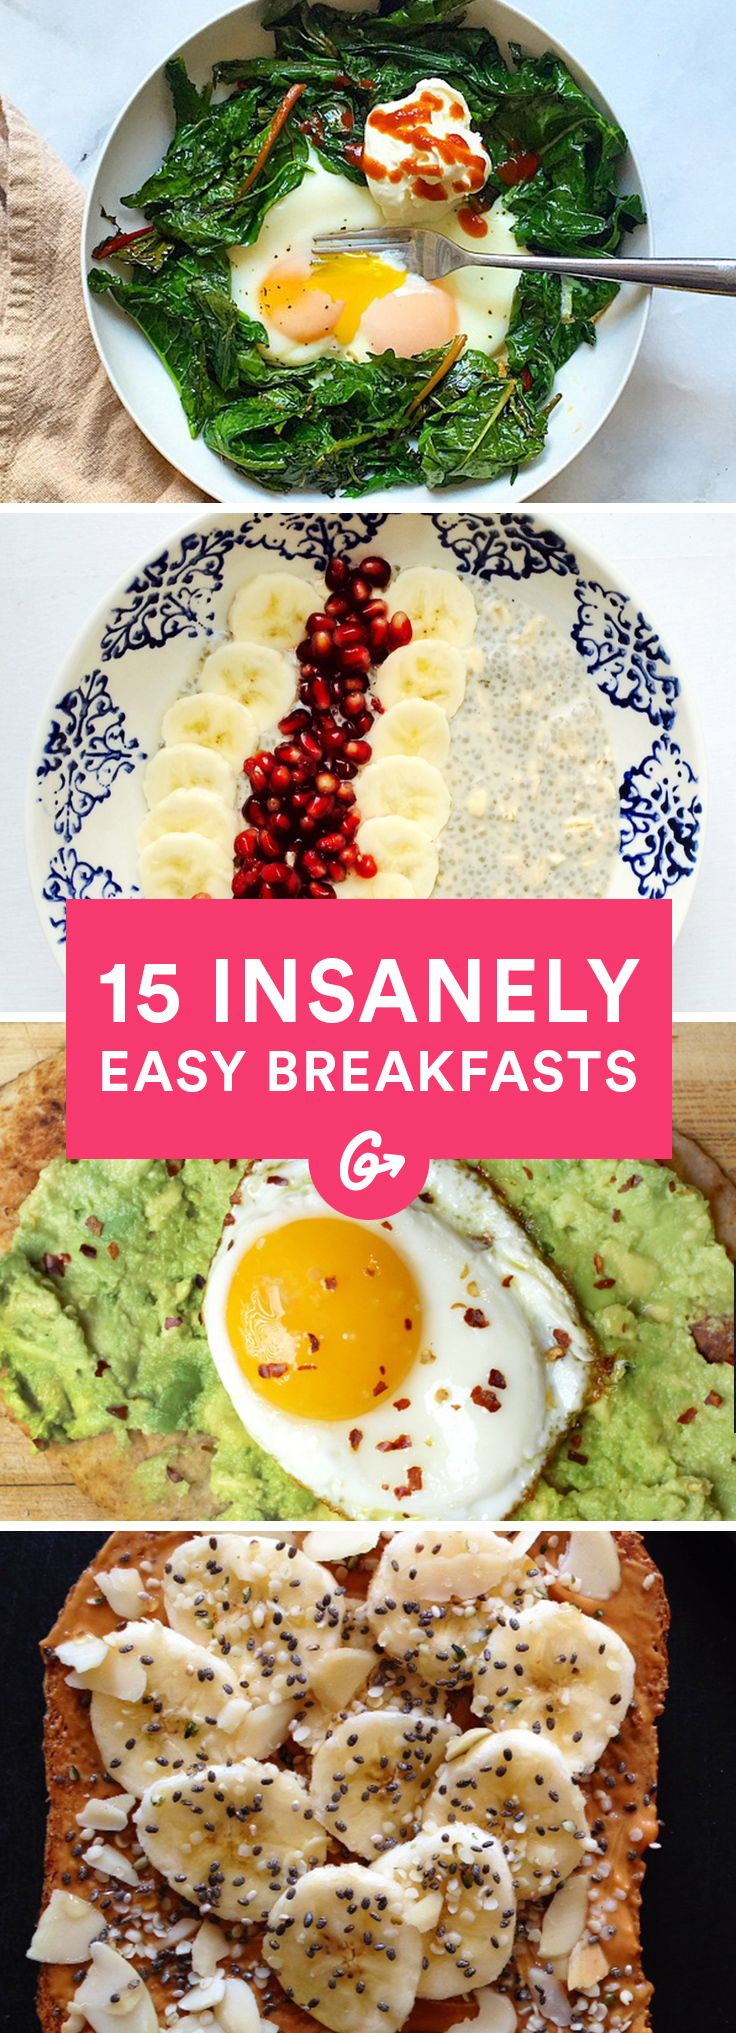 Check out their go-to healthy recipes that are perfect to make on your busiest mornings. #breakfast #easy #quick http://greatist.com/eat/insanely-easy-blogger-breakfasts